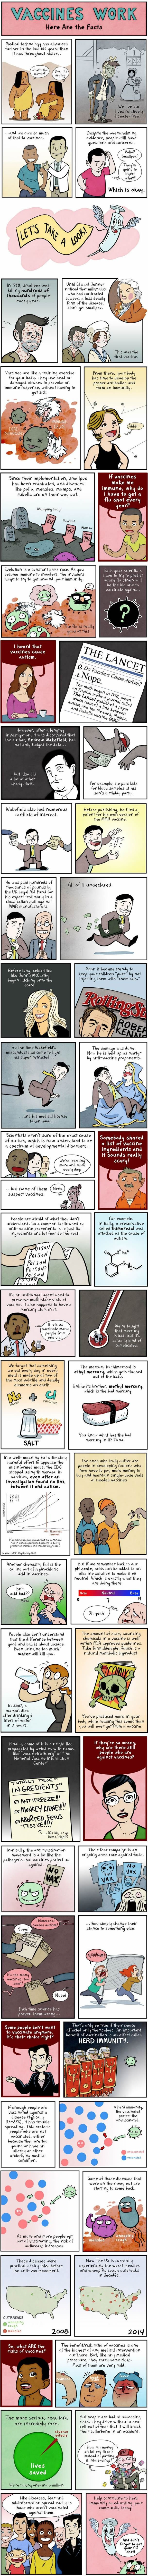 For all those Anti-Vaccine people... Science, b*tch! :) - 9GAG